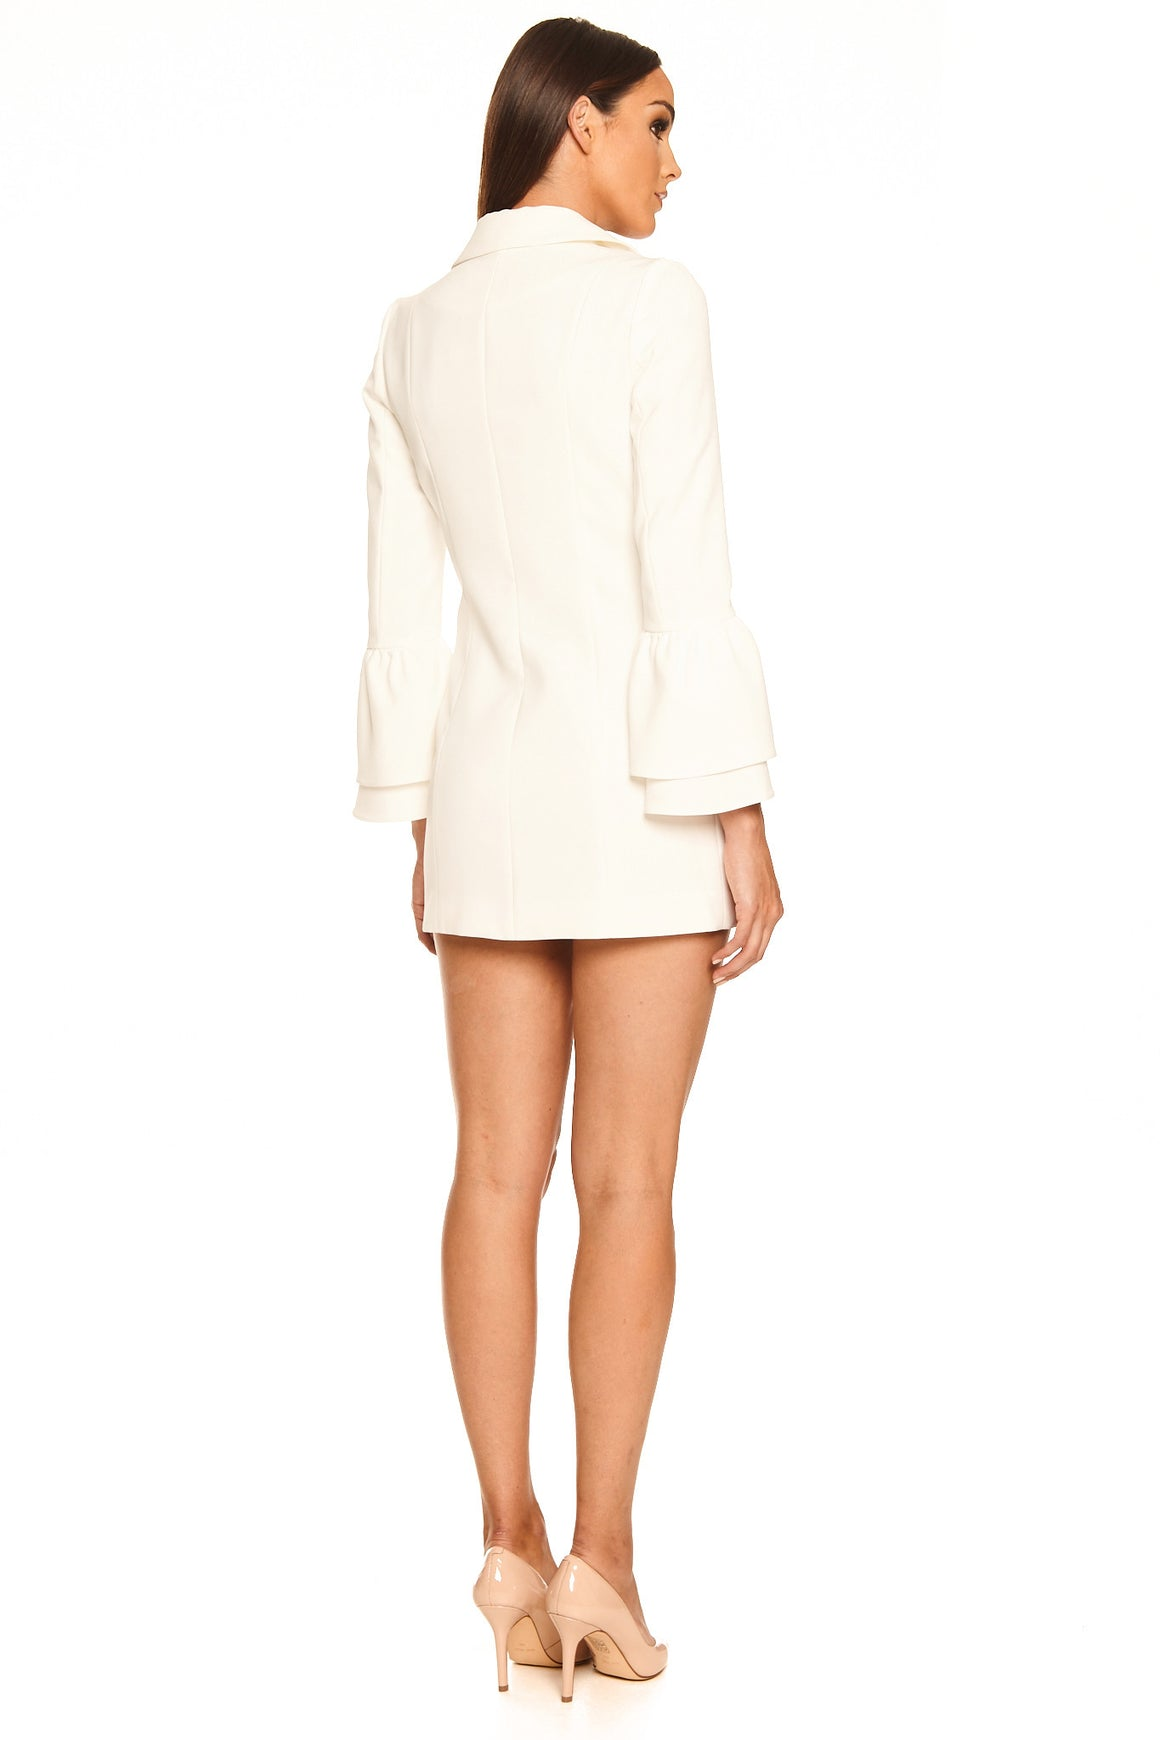 Melaina Blazer Dress - White [SAMPLE SALE]